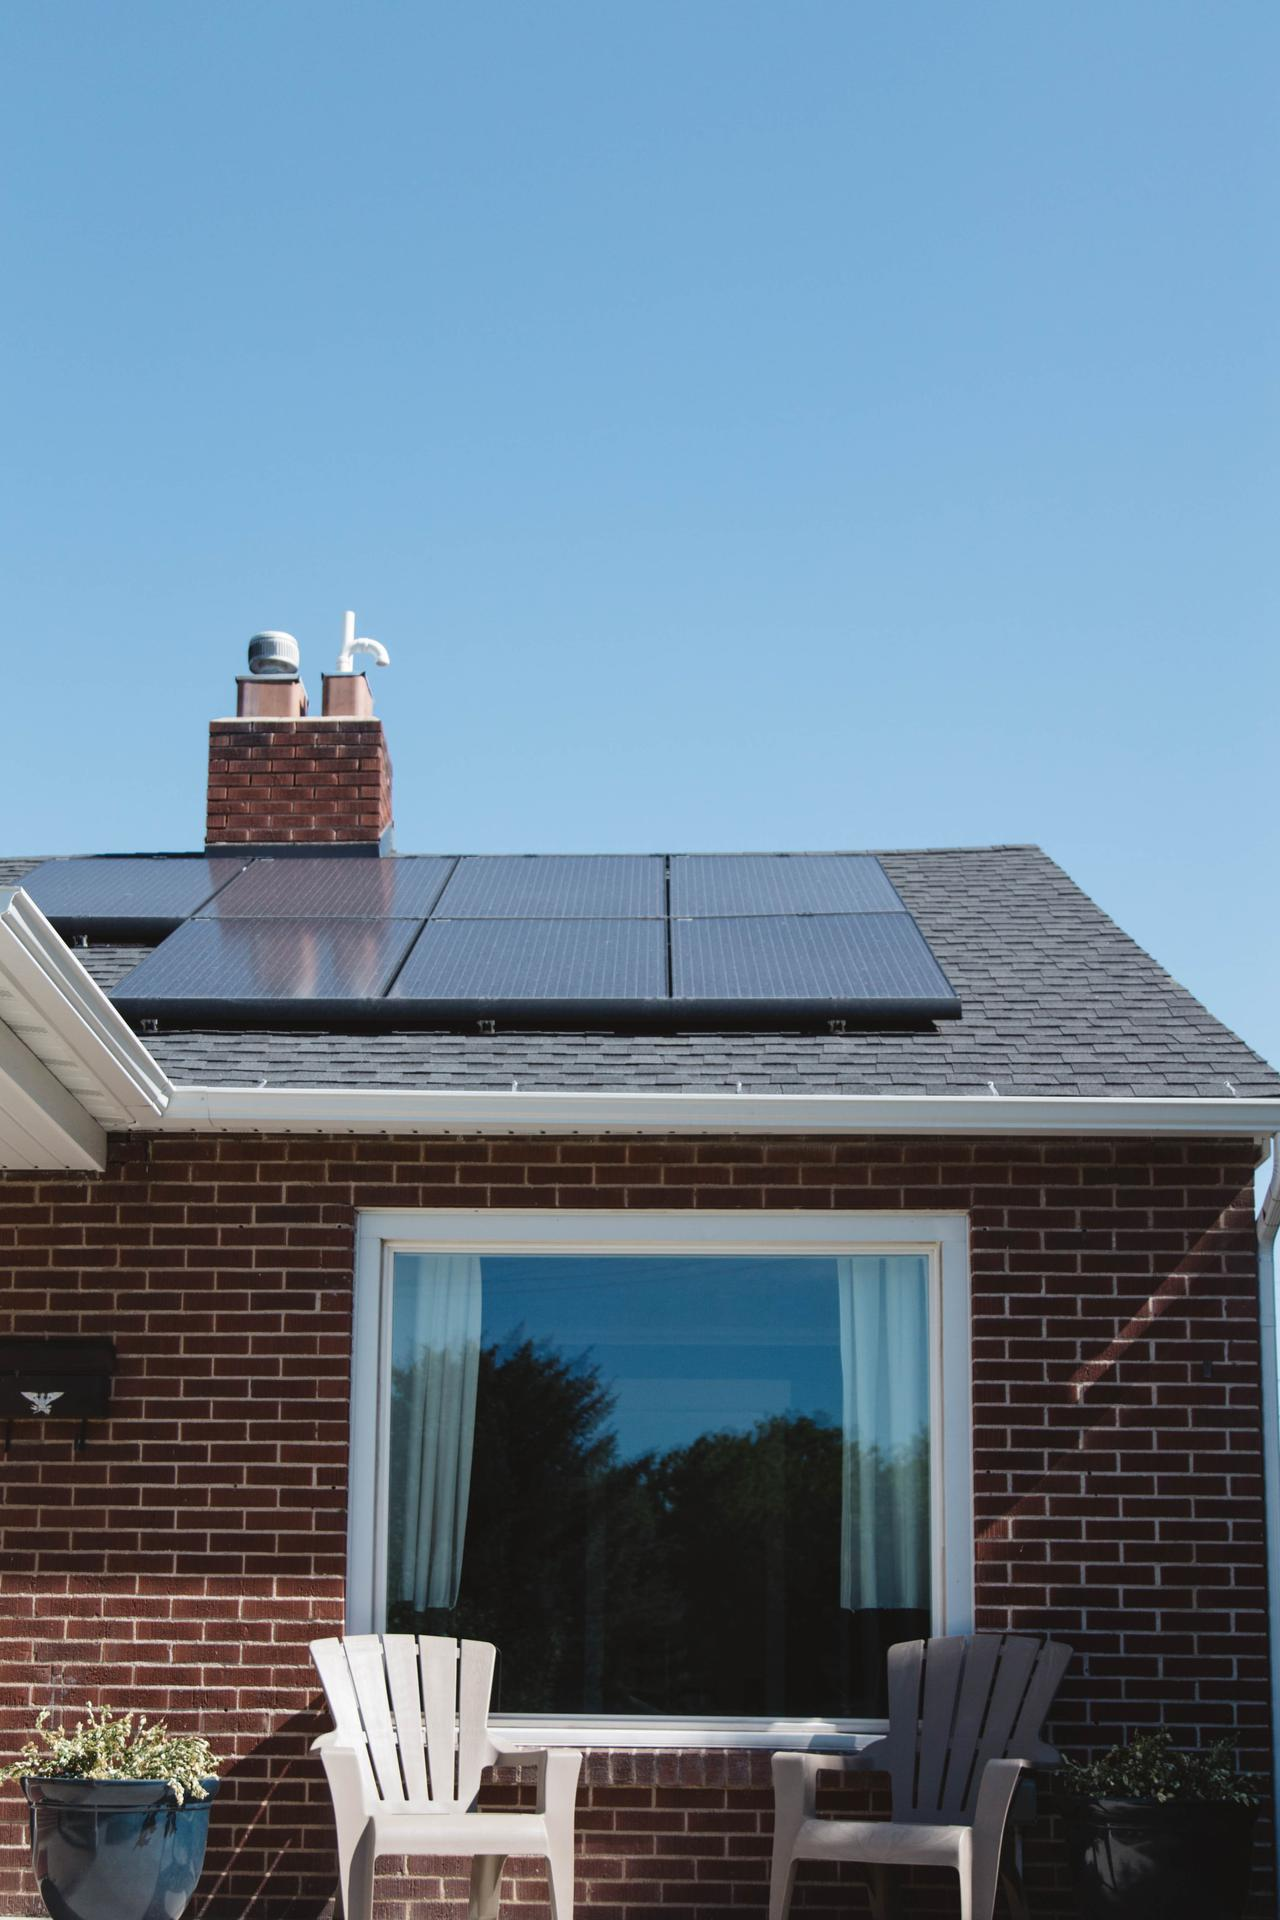 Learn more about what make Star Enrg one of the best home solar power companies in Delaware.